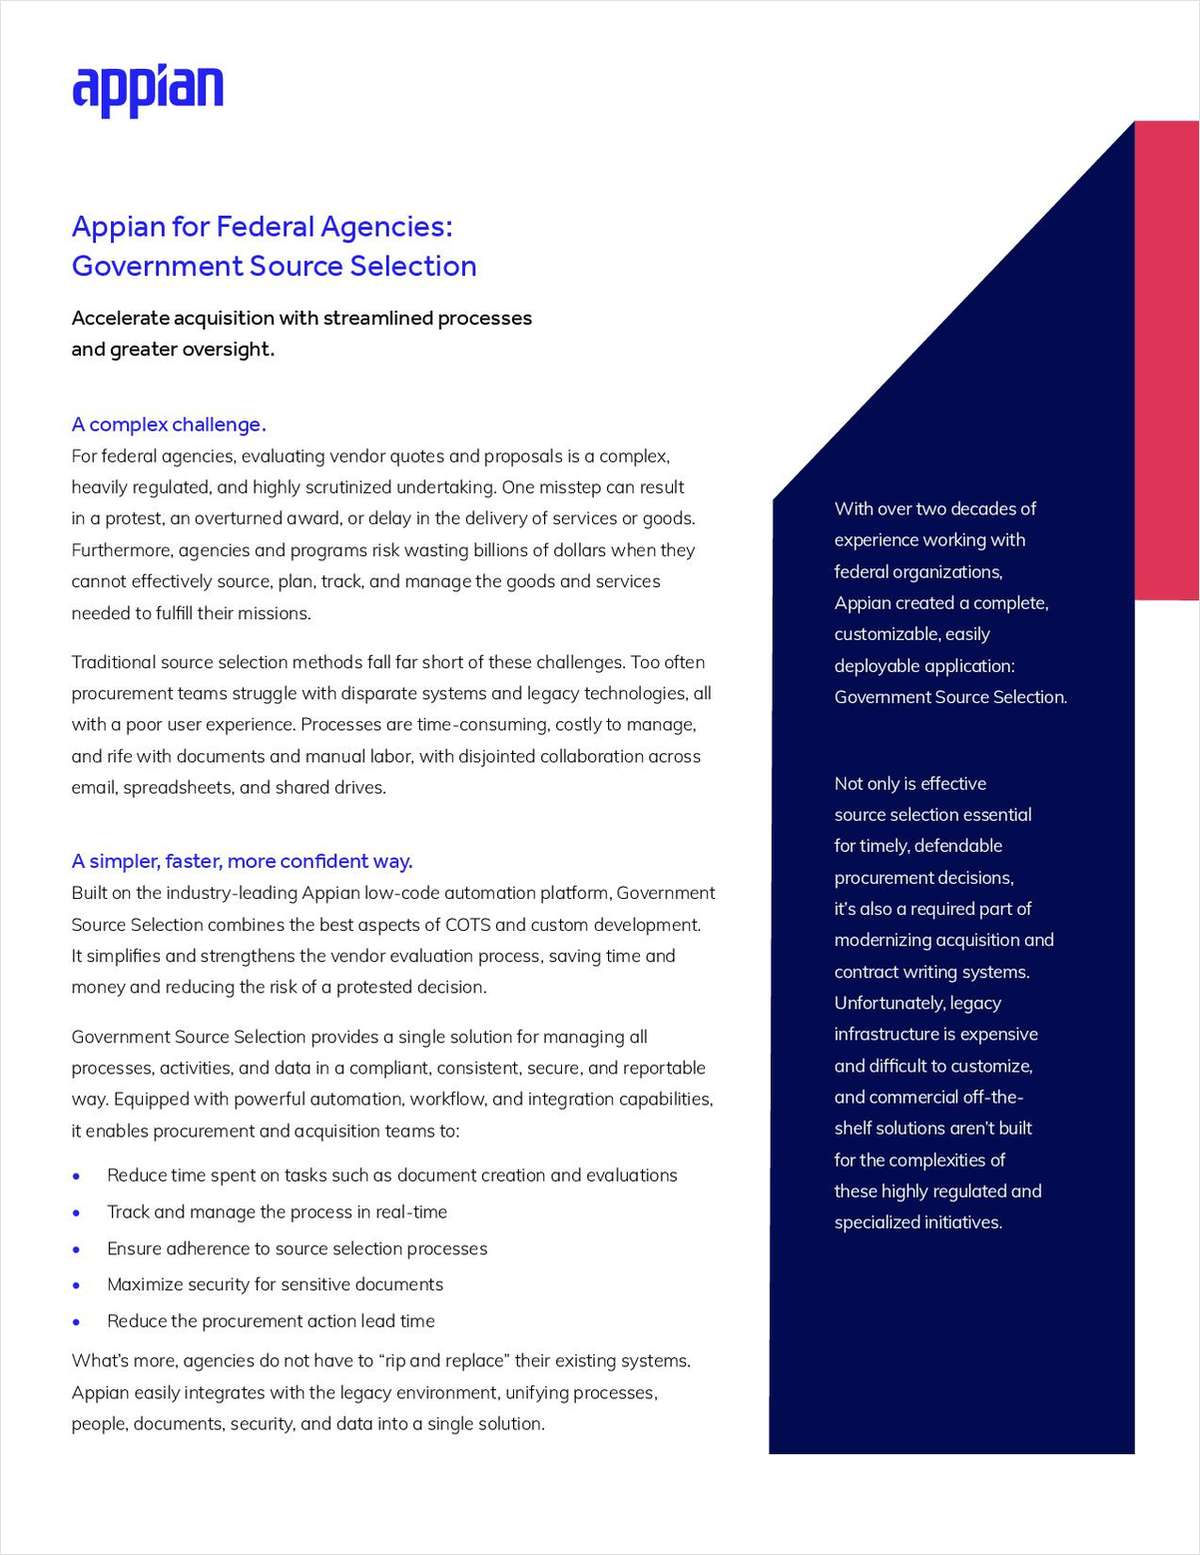 Appian for Federal Agencies: Government Source Selection